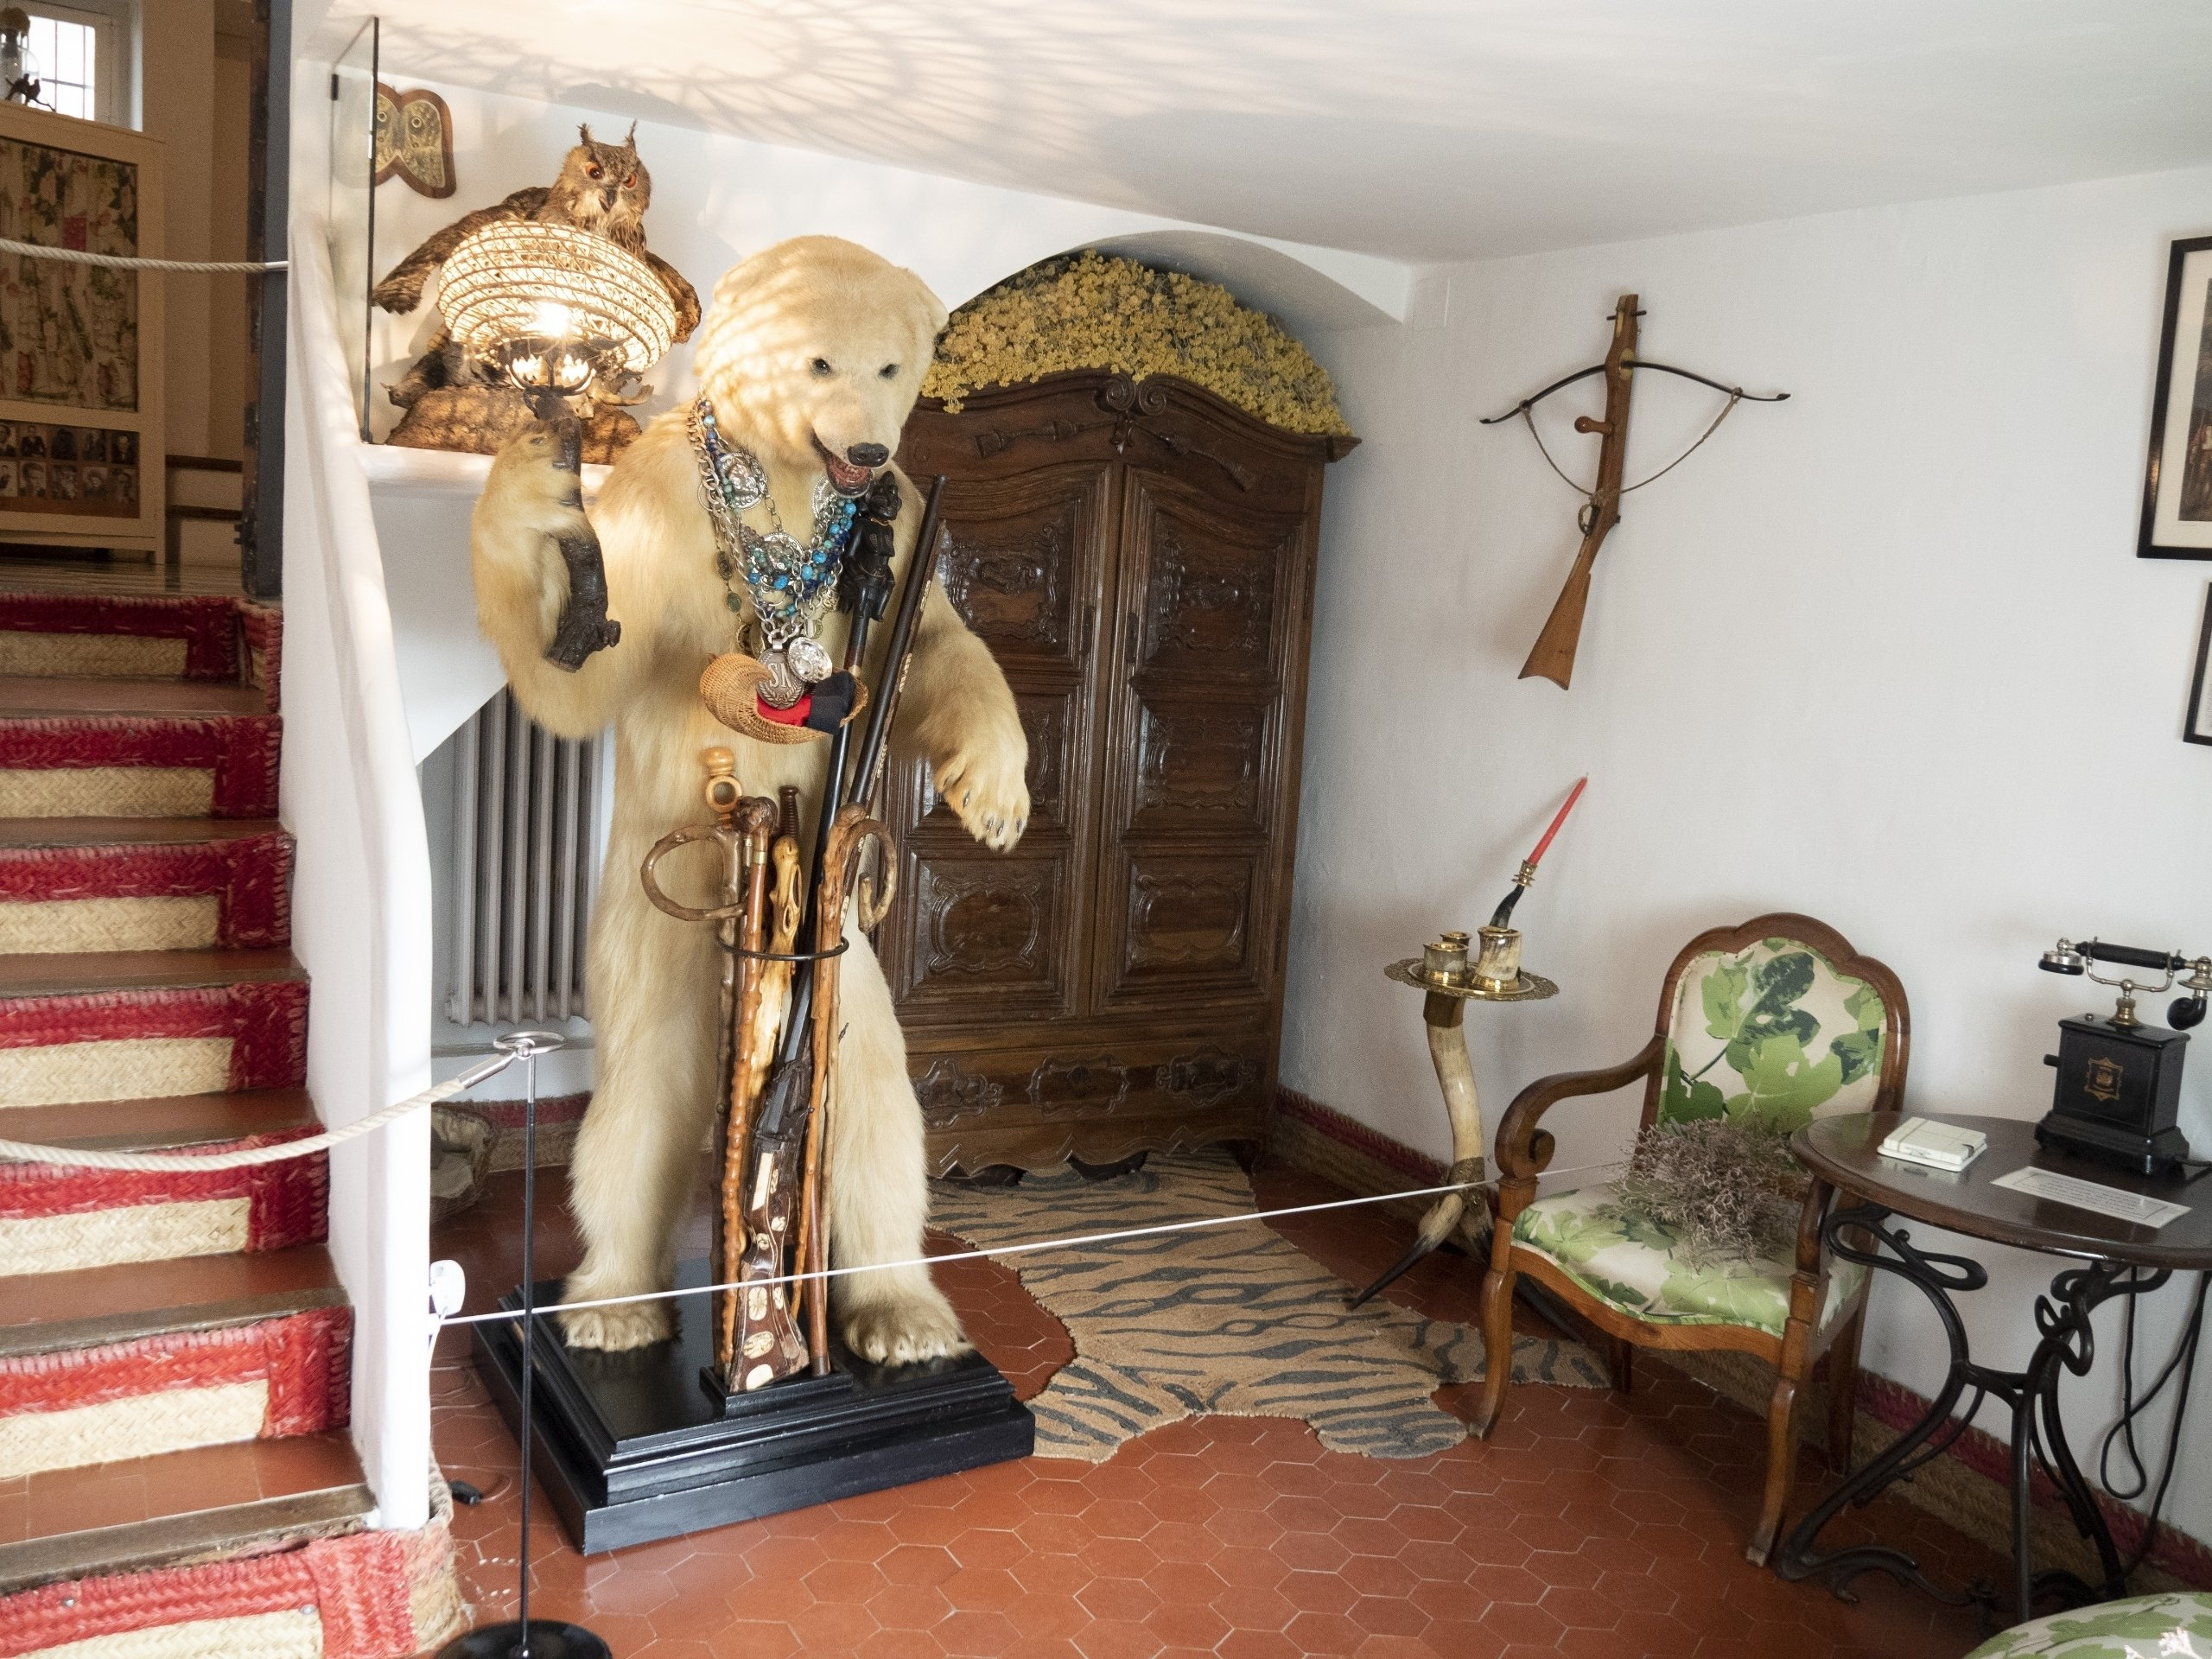 This is what you see when you walk into the Dali home in Port Lligat. (DPA Photo)